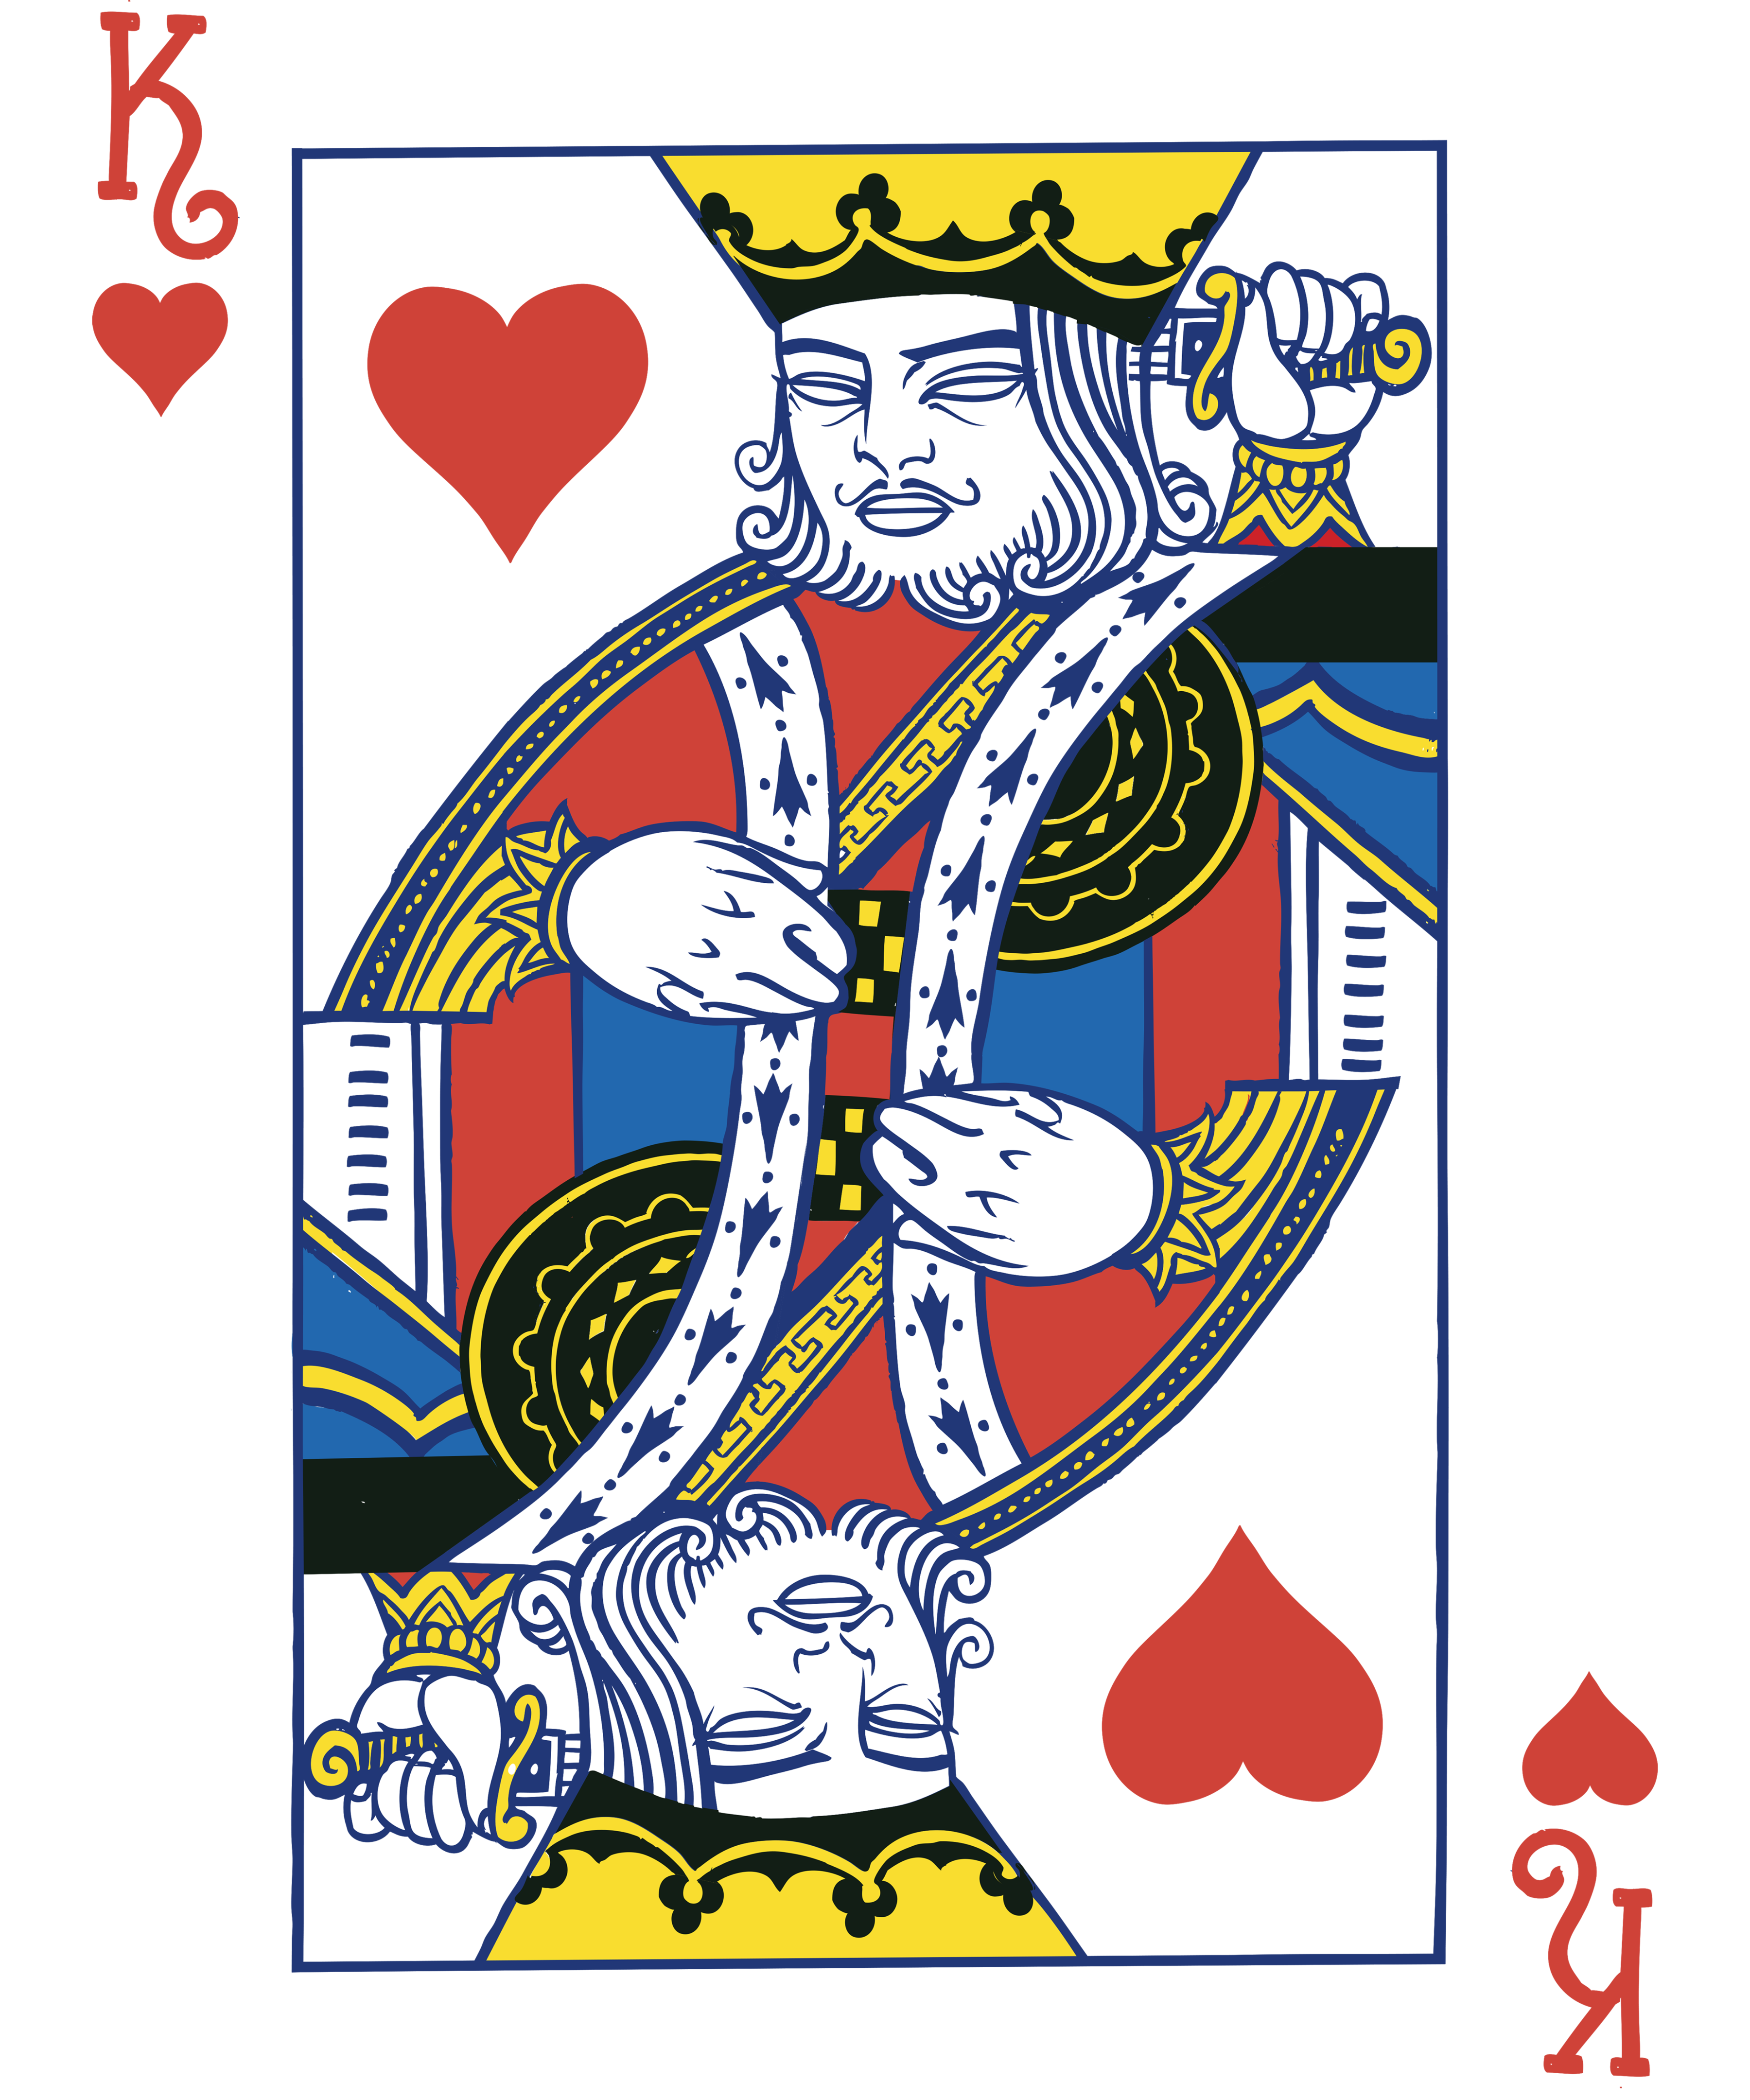 King of hearts png. S white black graphic